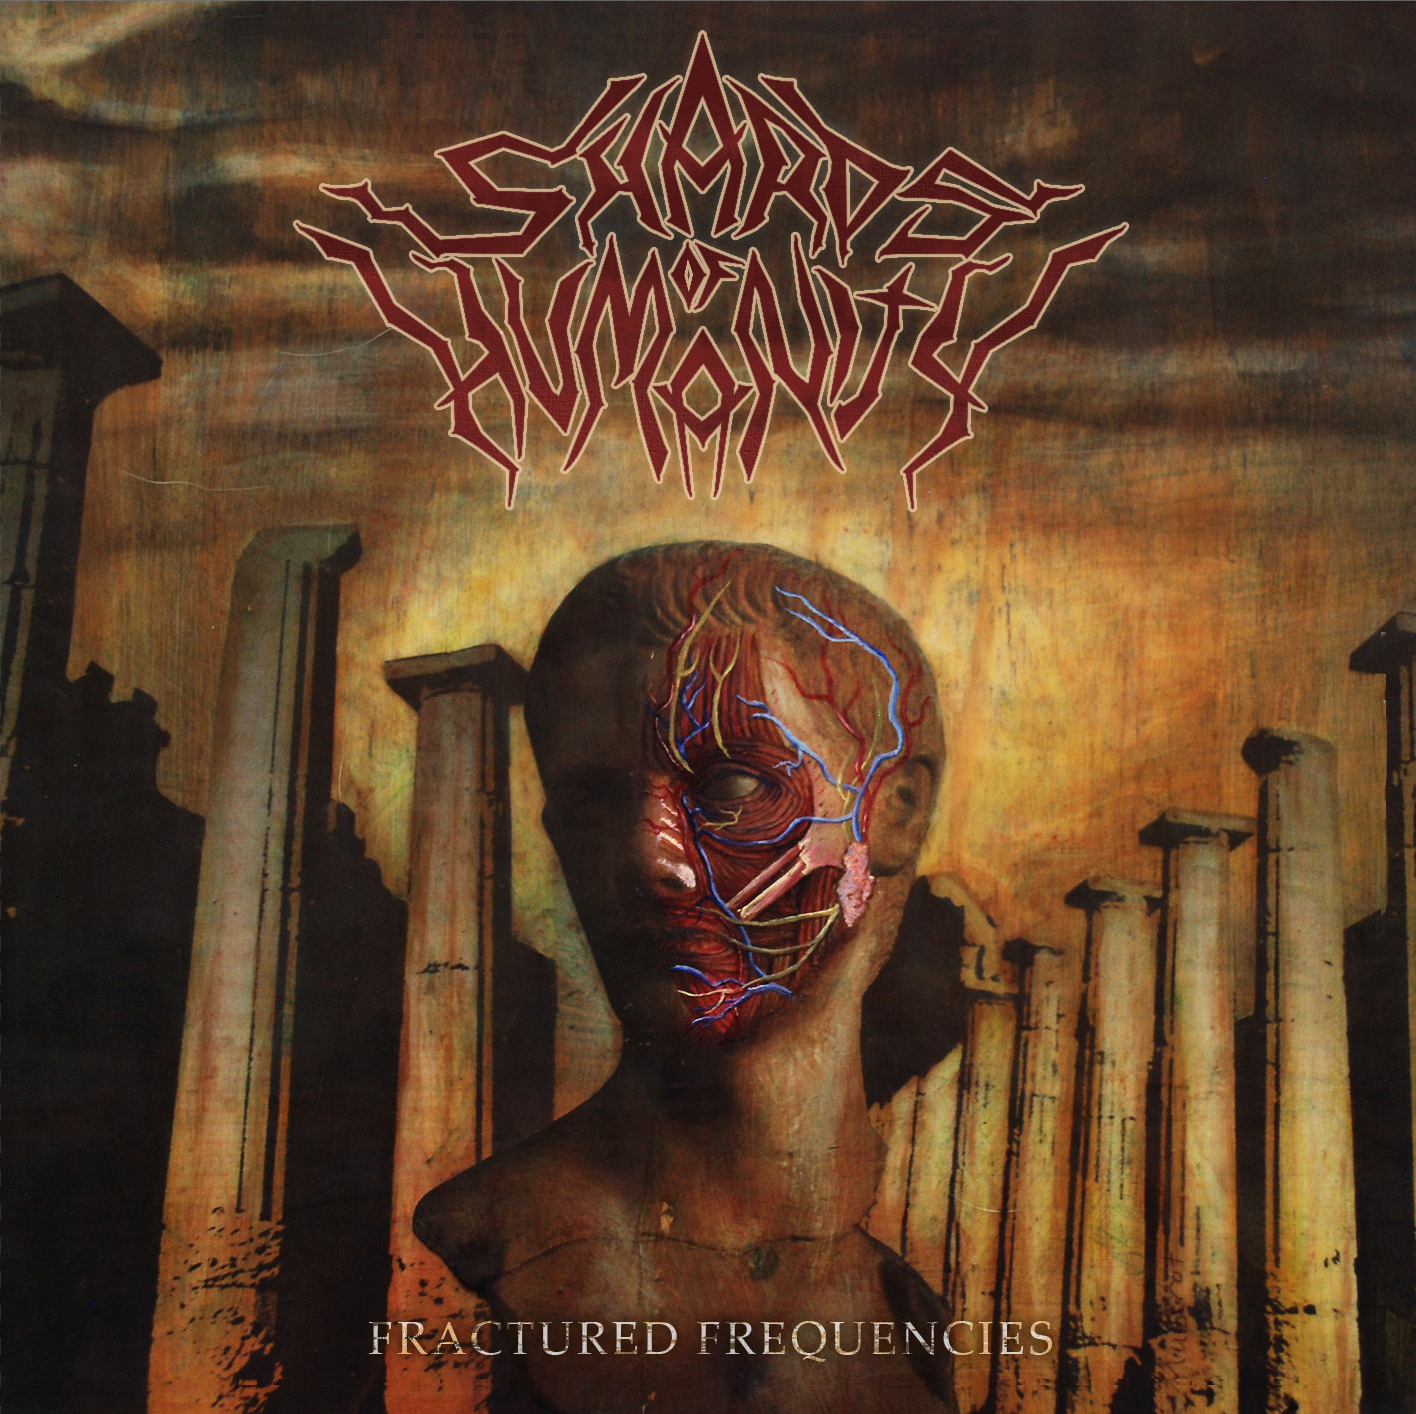 Shards of Humanity – Fractured Frequencies Review